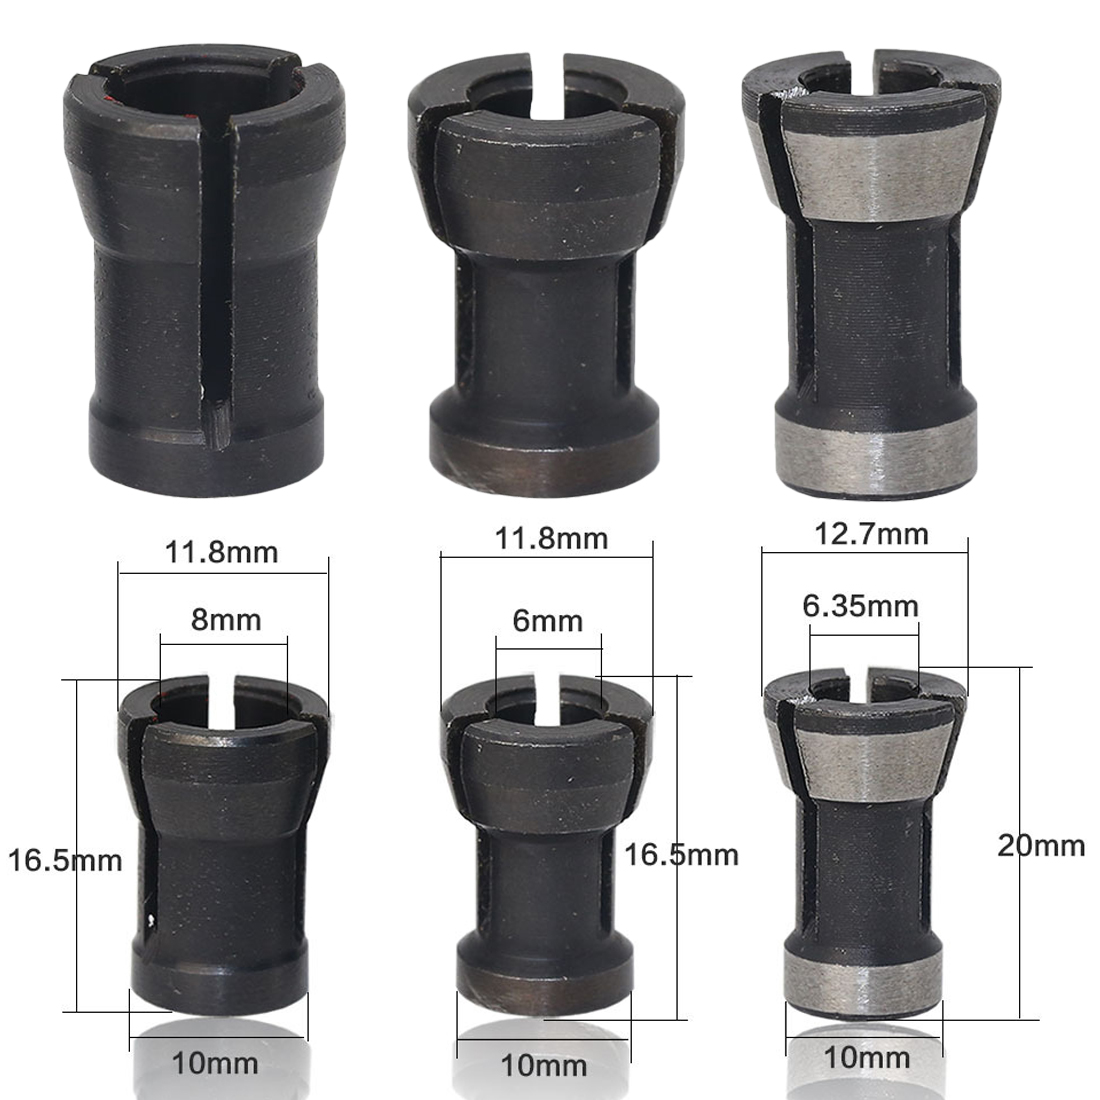 6mm/6.35mm/8mm Collet Chuck Engraving Trimming Machine Electric Router For Machinery Manufacturing Woodworking Cutter  1pcs/3pcs